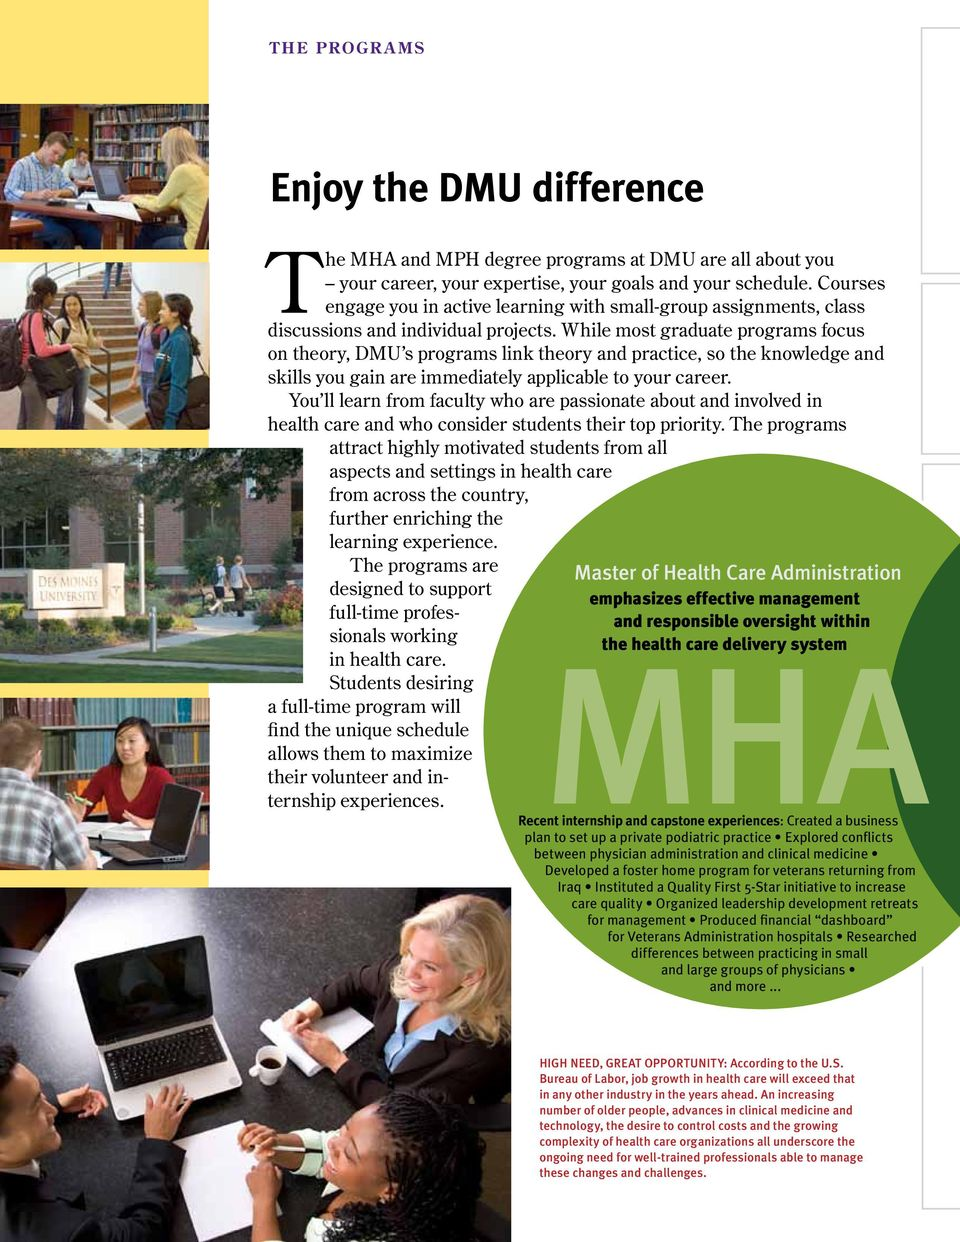 While most graduate programs focus on theory, DMU s programs link theory and practice, so the knowledge and skills you gain are immediately applicable to your career.